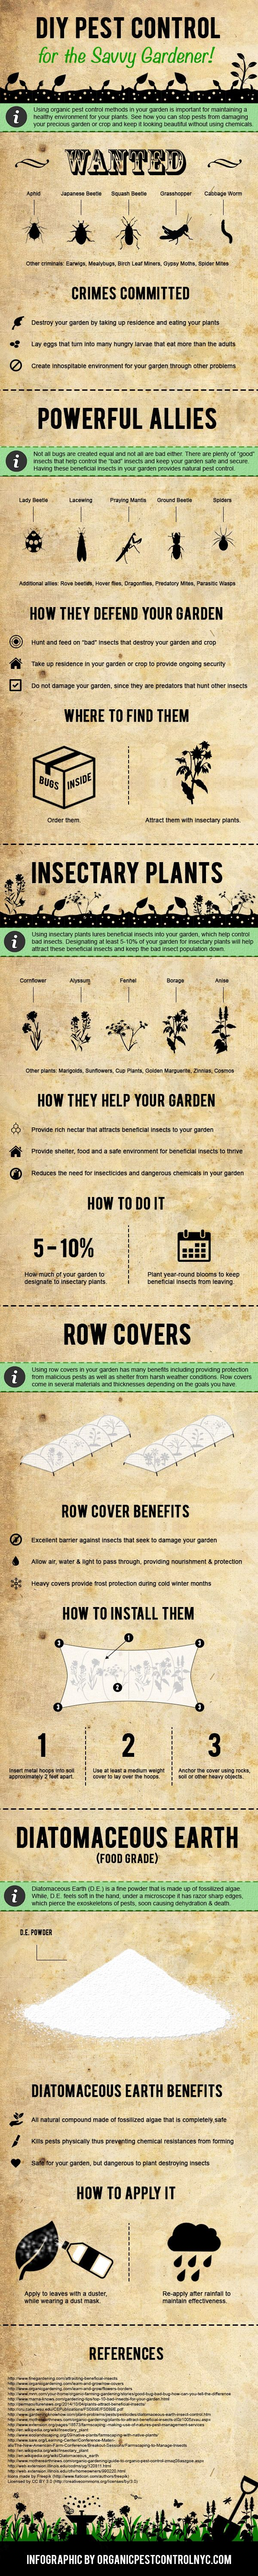 DIY Pest Control for the Savvy Gardener! #infographic #DIY #PestControl…